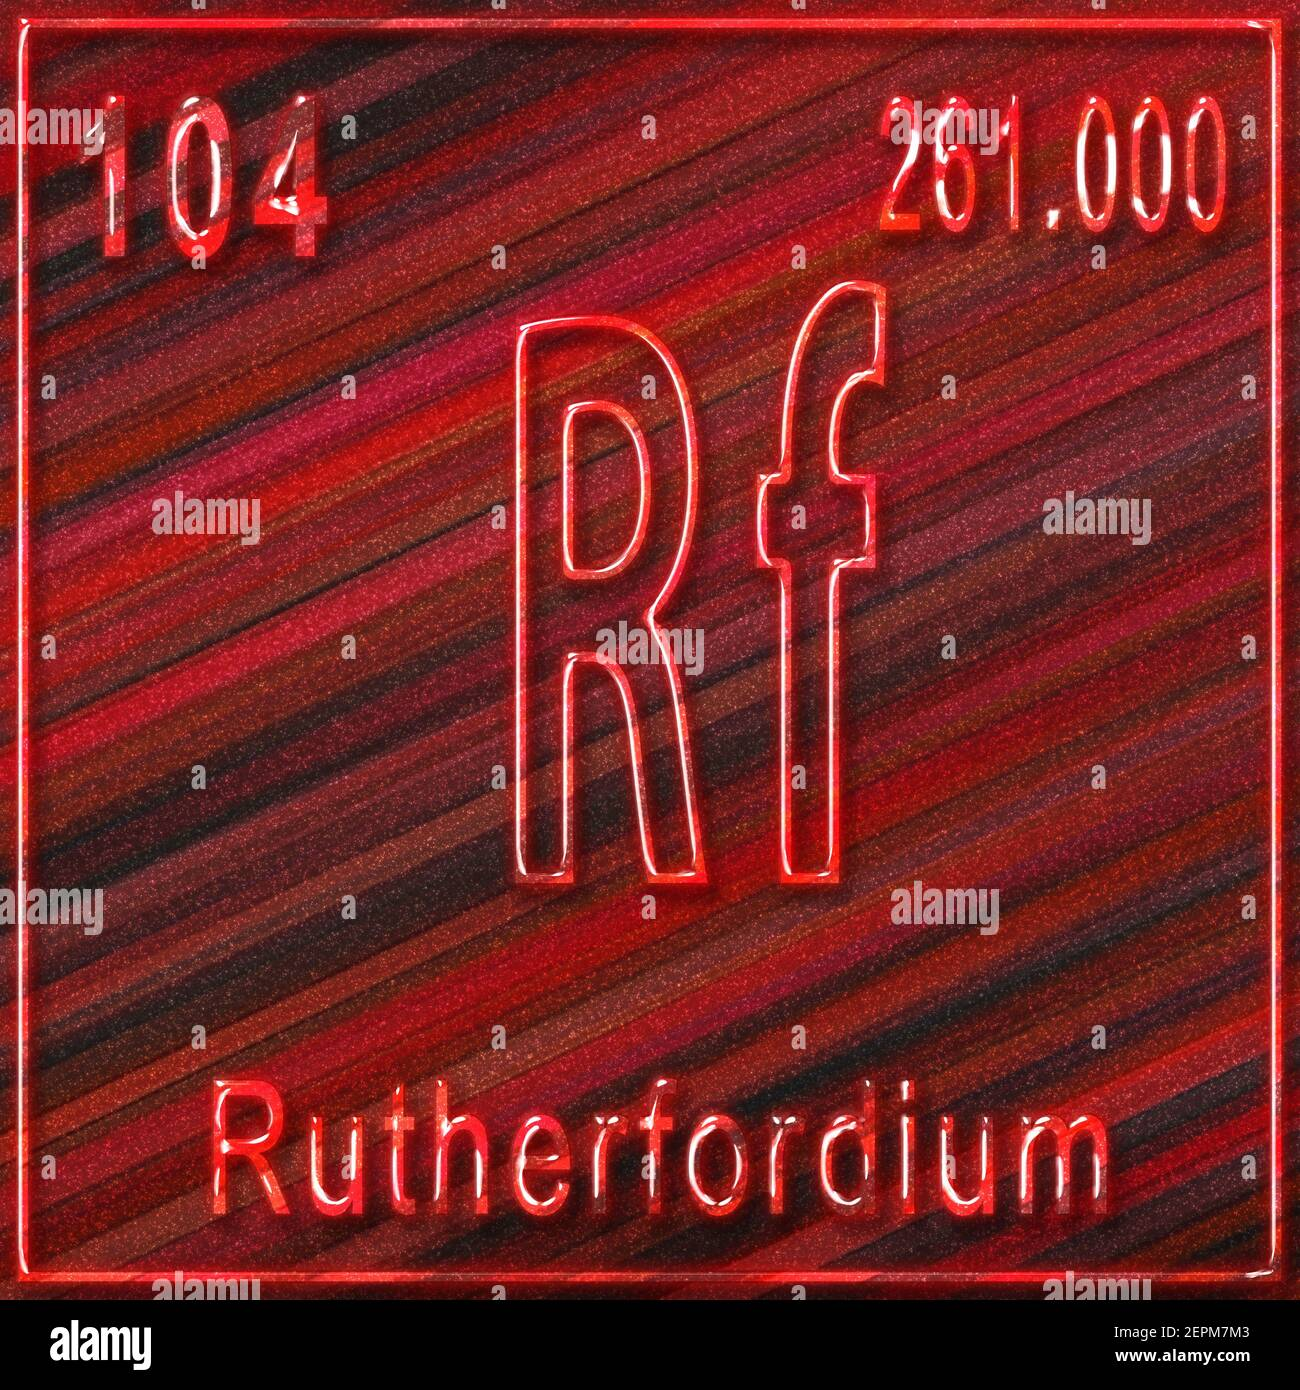 Rutherfordium chemical element, Sign with atomic number and atomic weight, Periodic Table Element Stock Photo